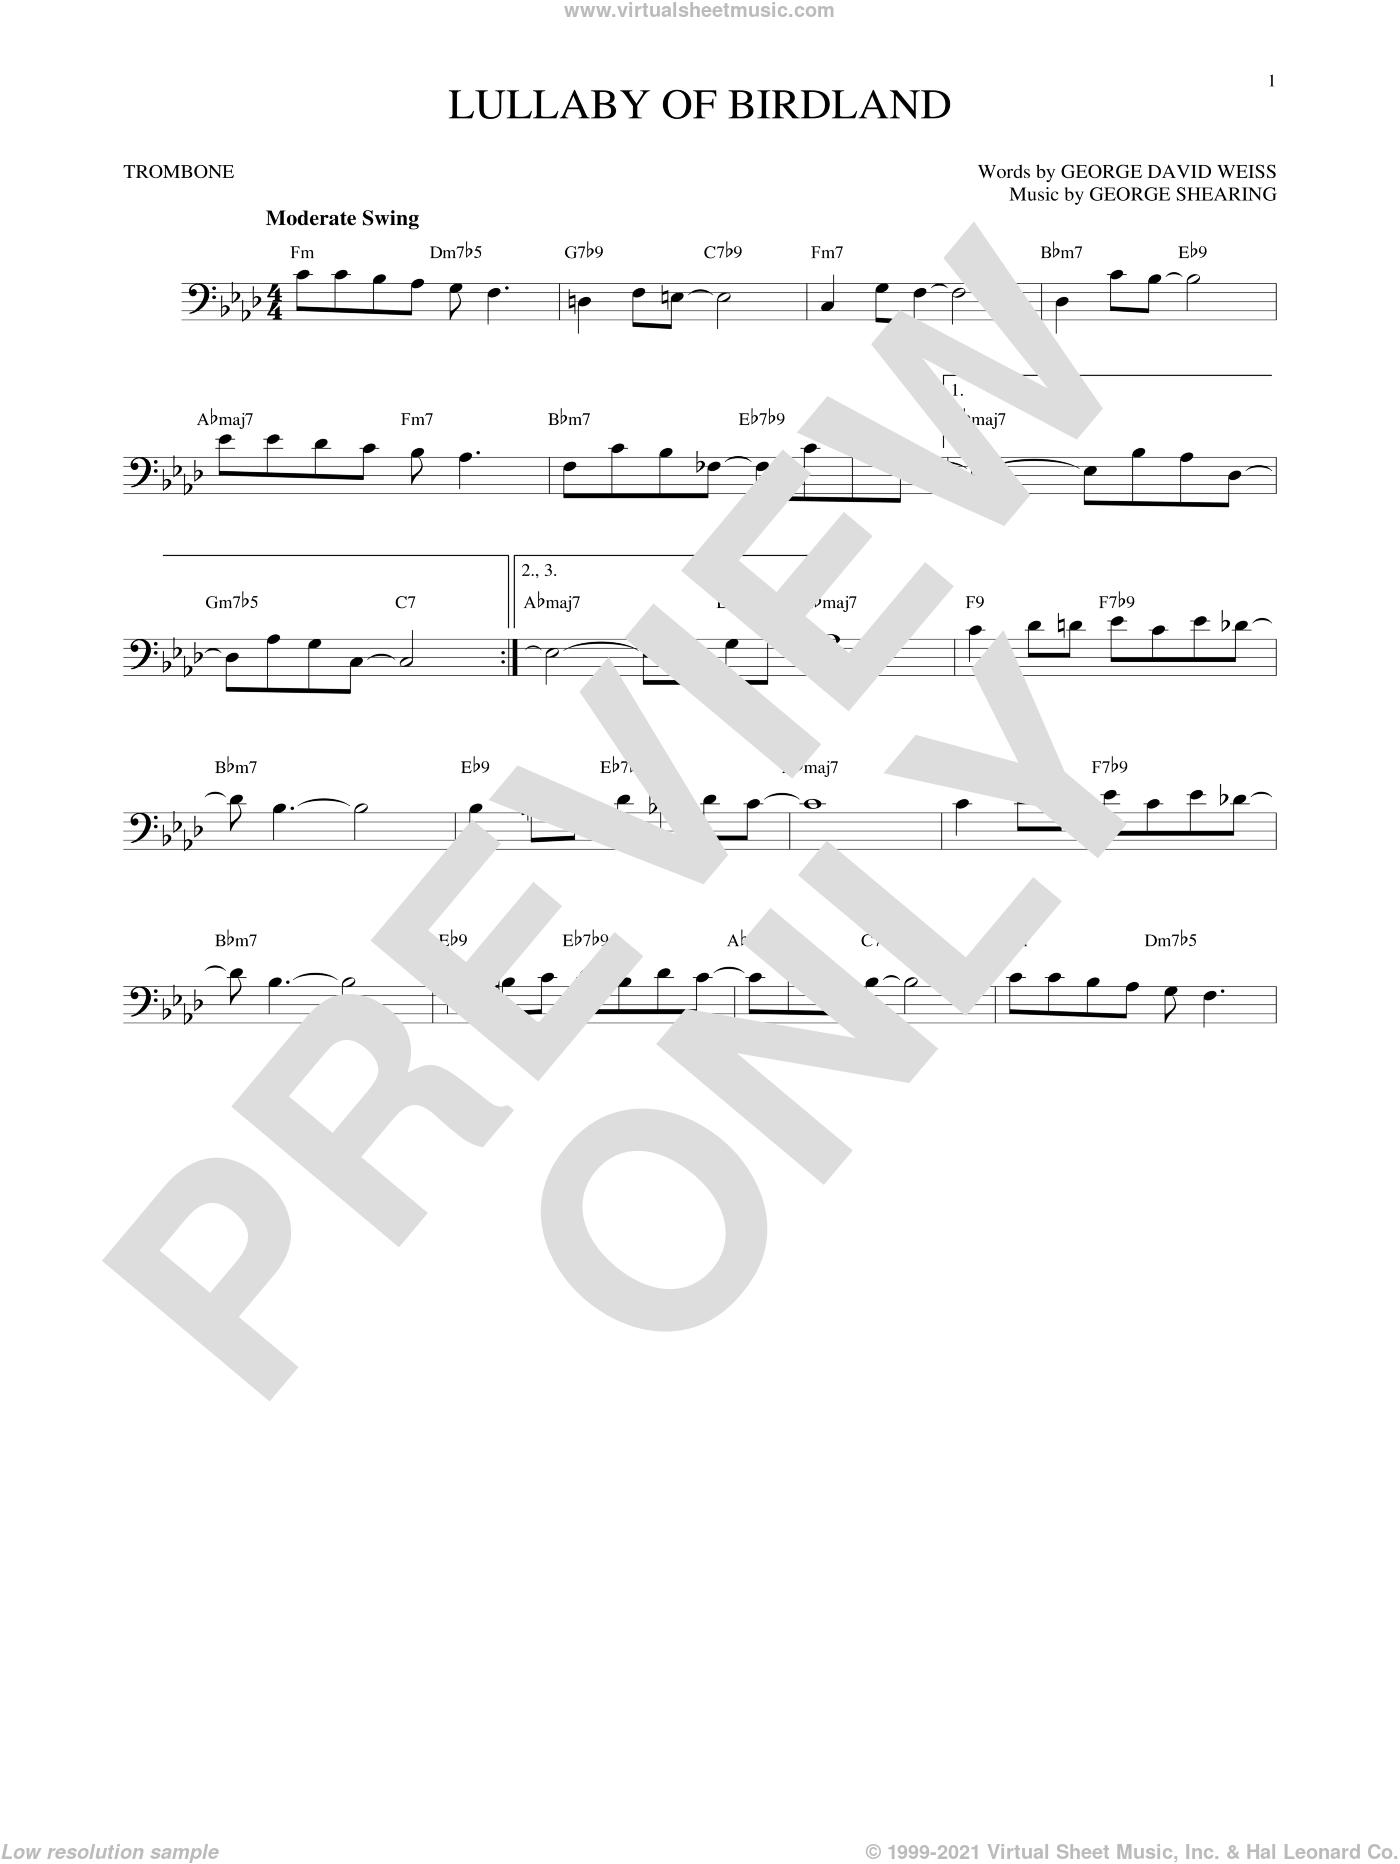 Lullaby Of Birdland sheet music for trombone solo by George David Weiss and George Shearing, intermediate skill level